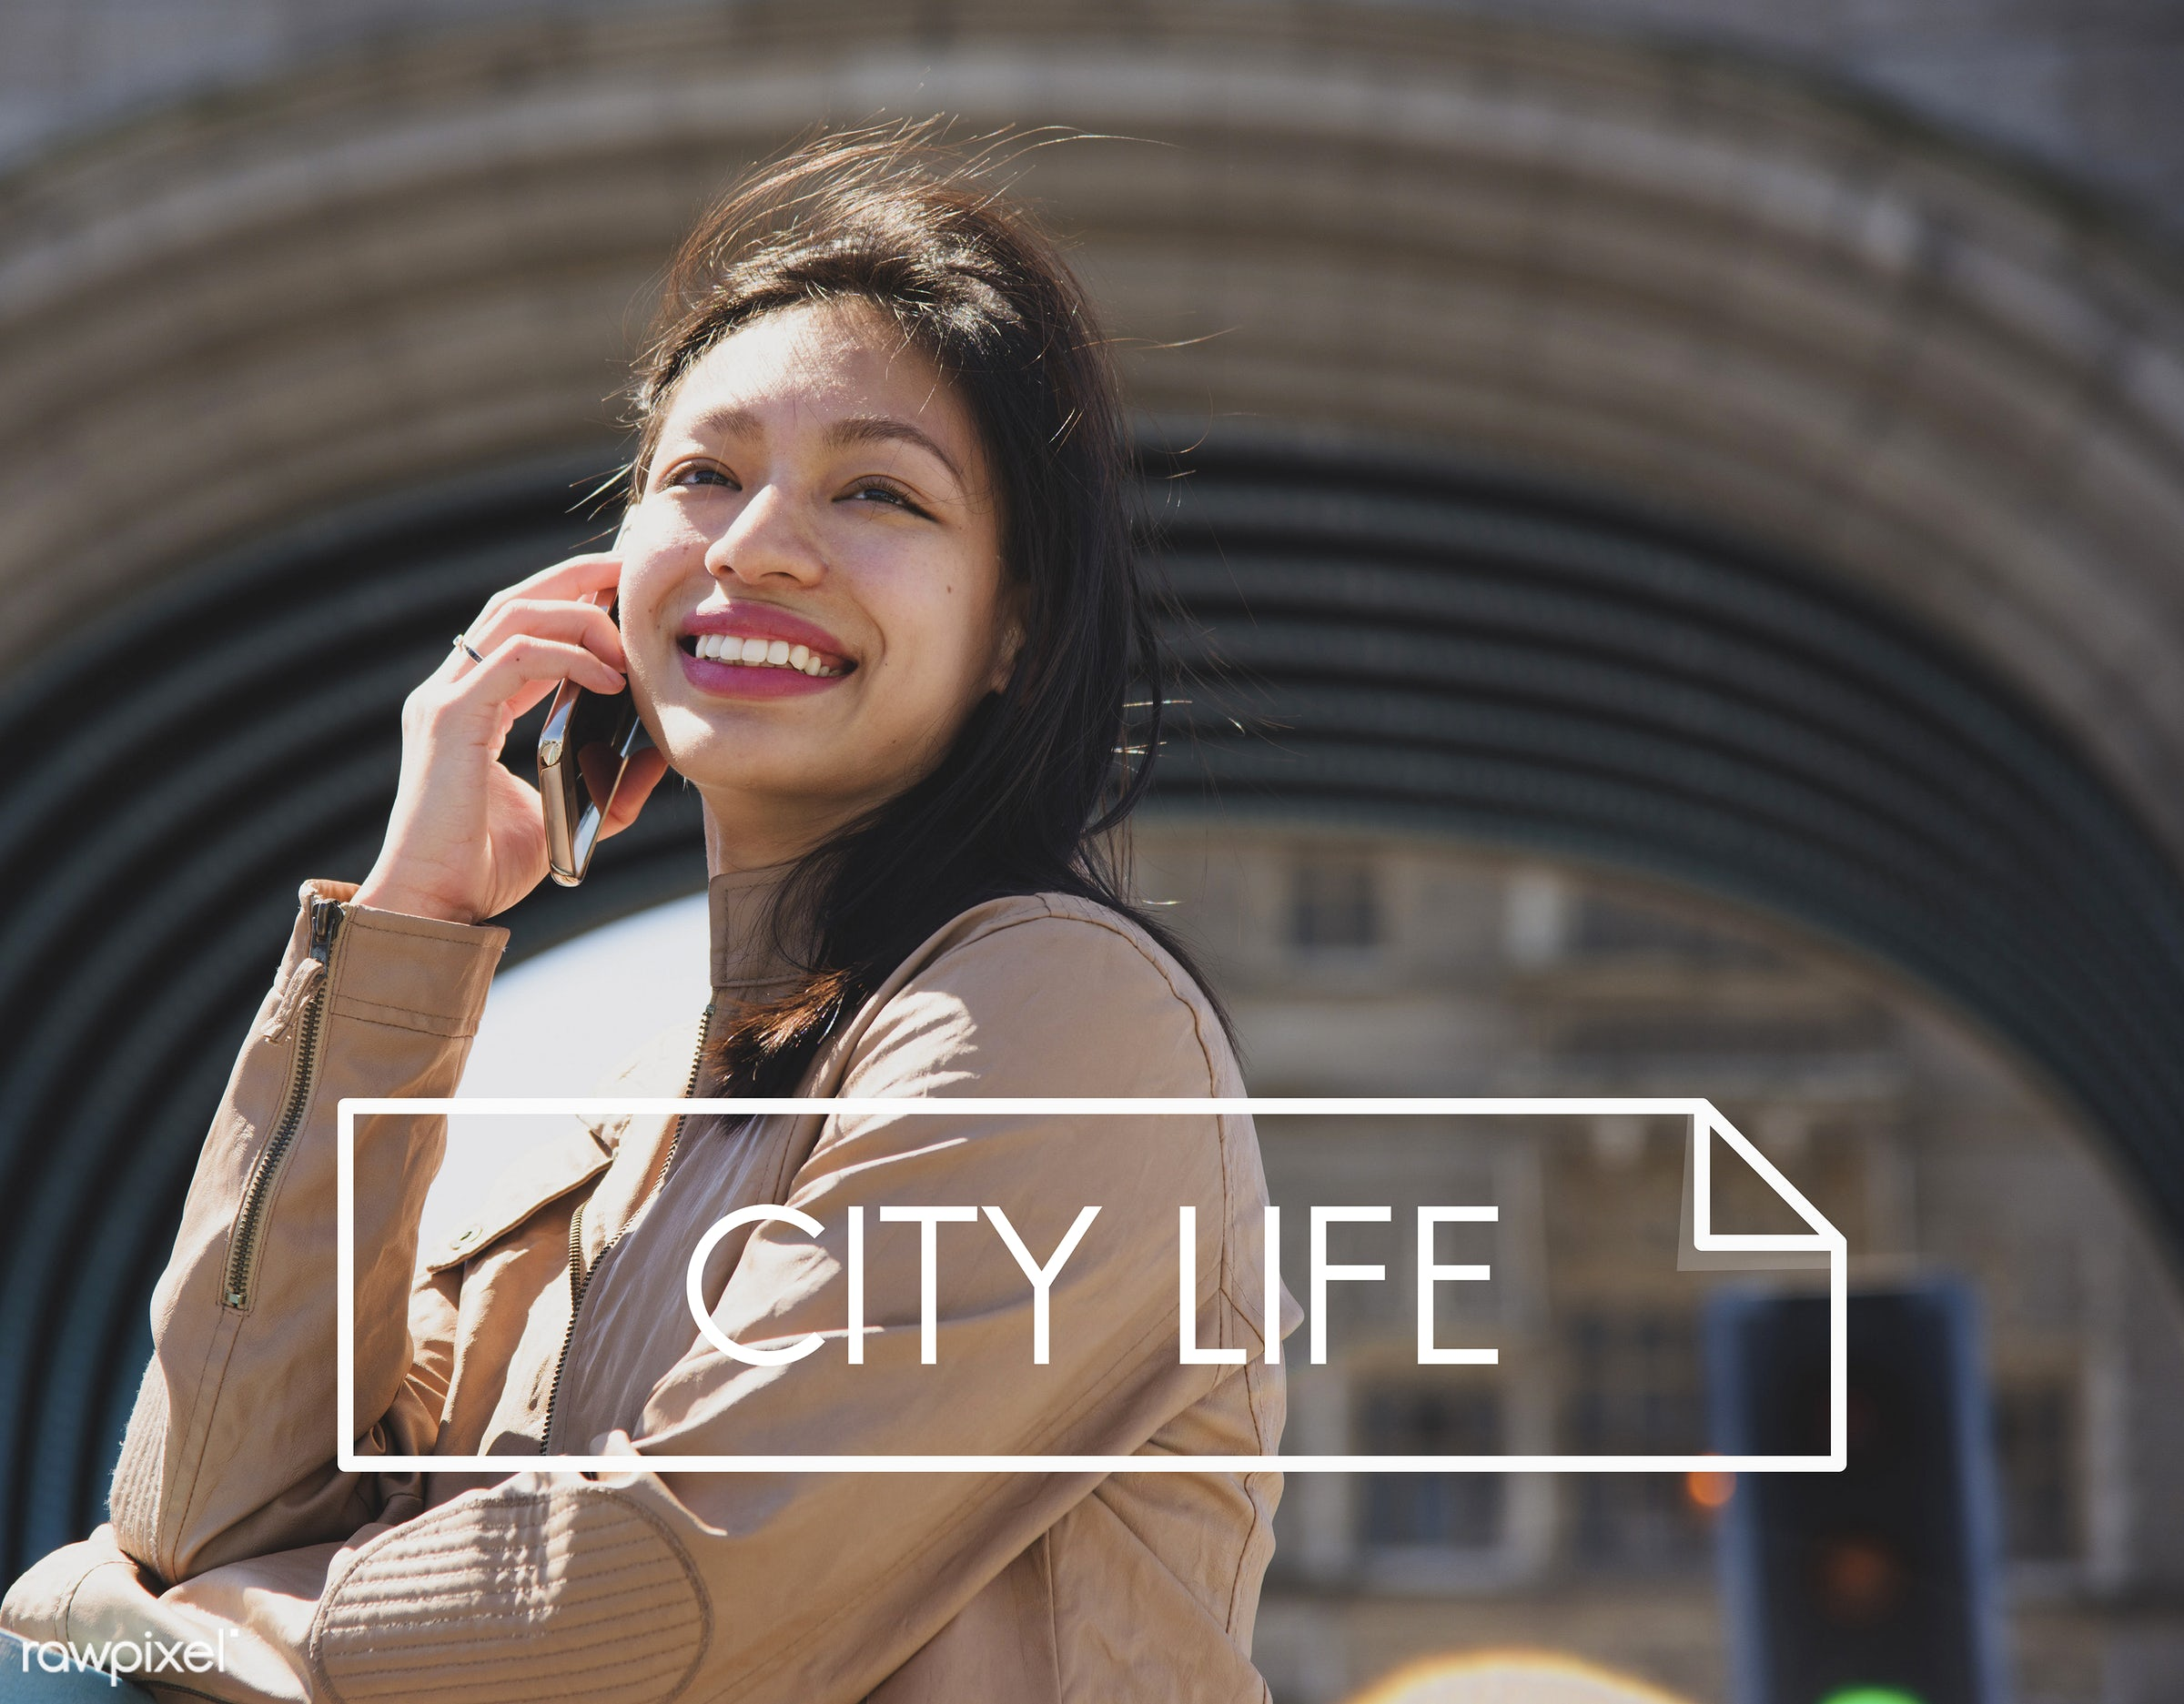 advanced technology, asian, bridge, britian, call, calling, captionadded, cellphone, city life, communication, connection,...